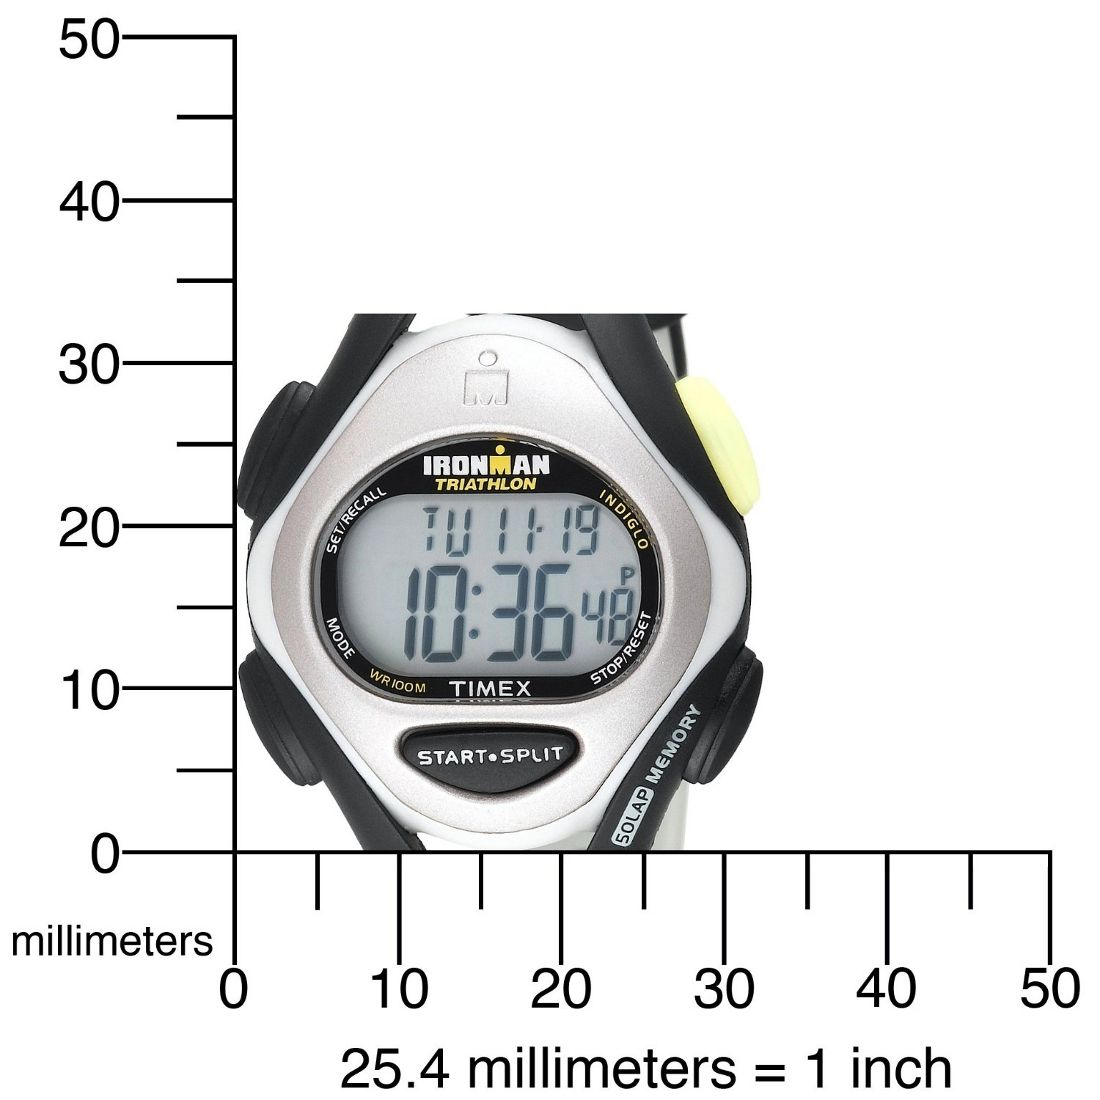 TIMEX IRONMAN USER MANUAL Pdf Download.